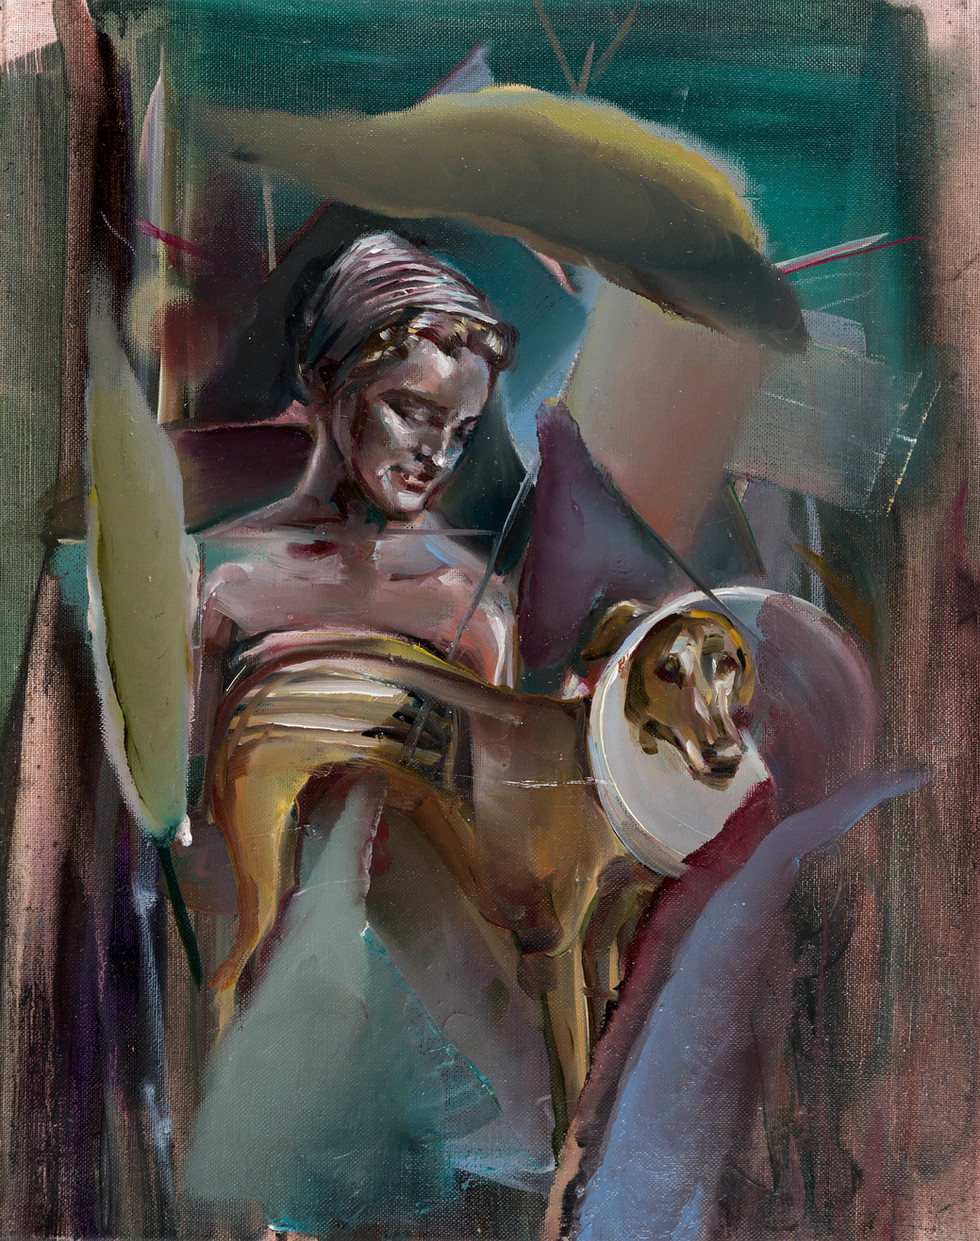 Geometrical girl with dog, oil on linen, 2018